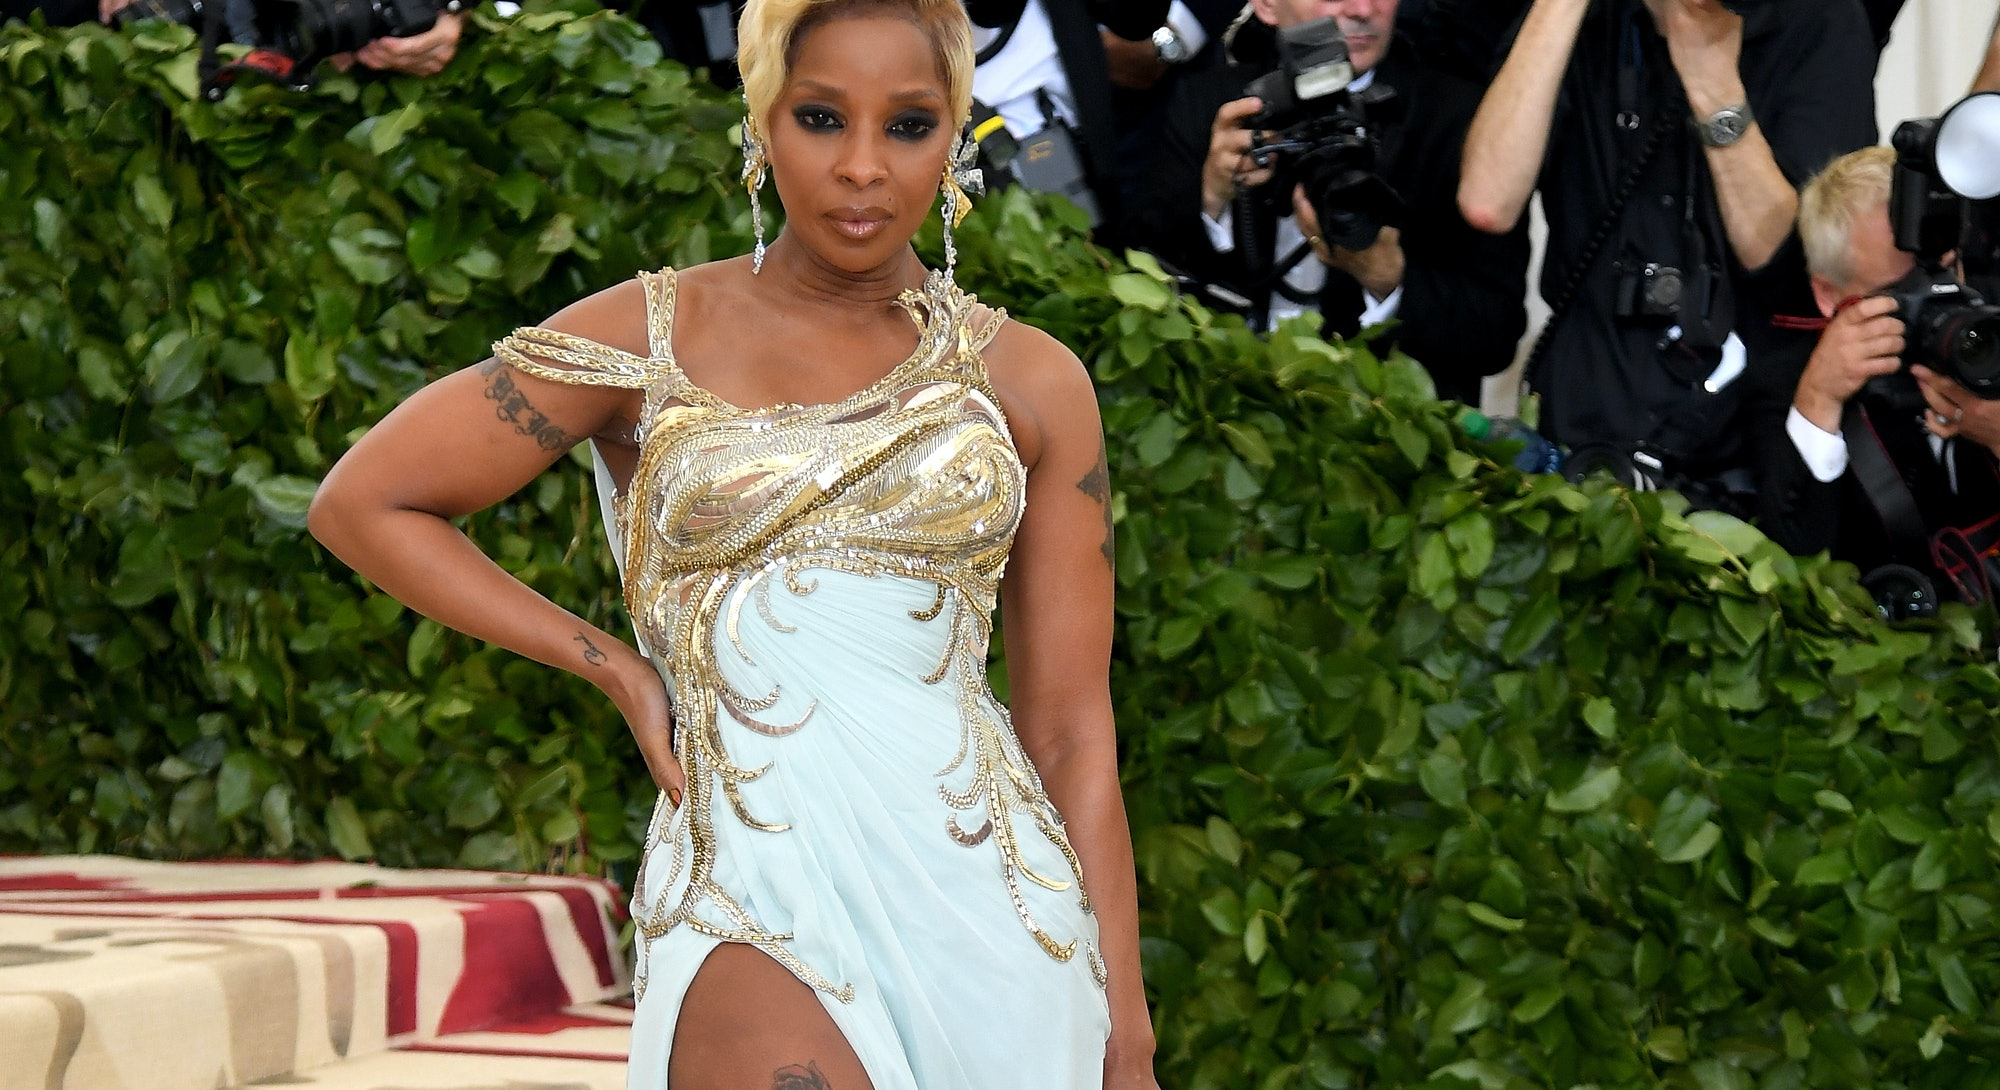 Mary J. Blige's Style Evolution, From '90s Trends To Met Gala Glamour